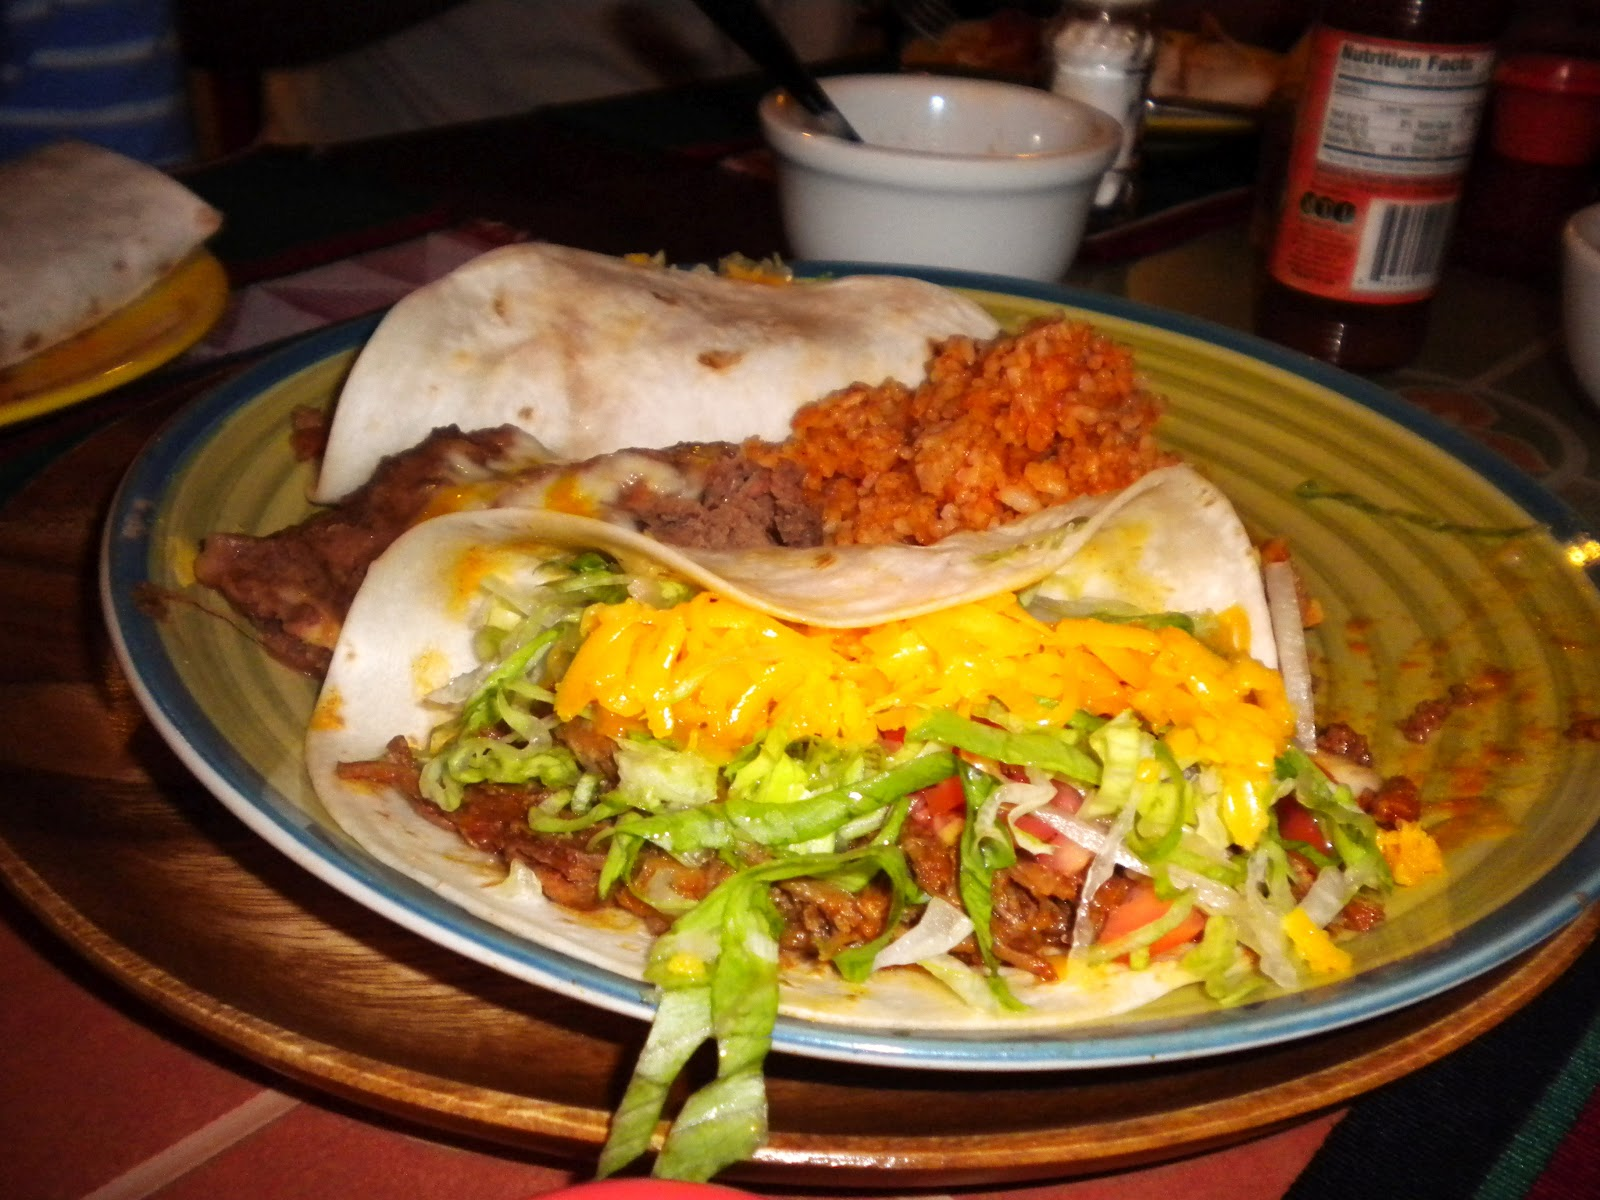 Celine 39 s day off iguana formerly zapata 39 s cantina mexicana - Iguanas mexican grill cantina ...